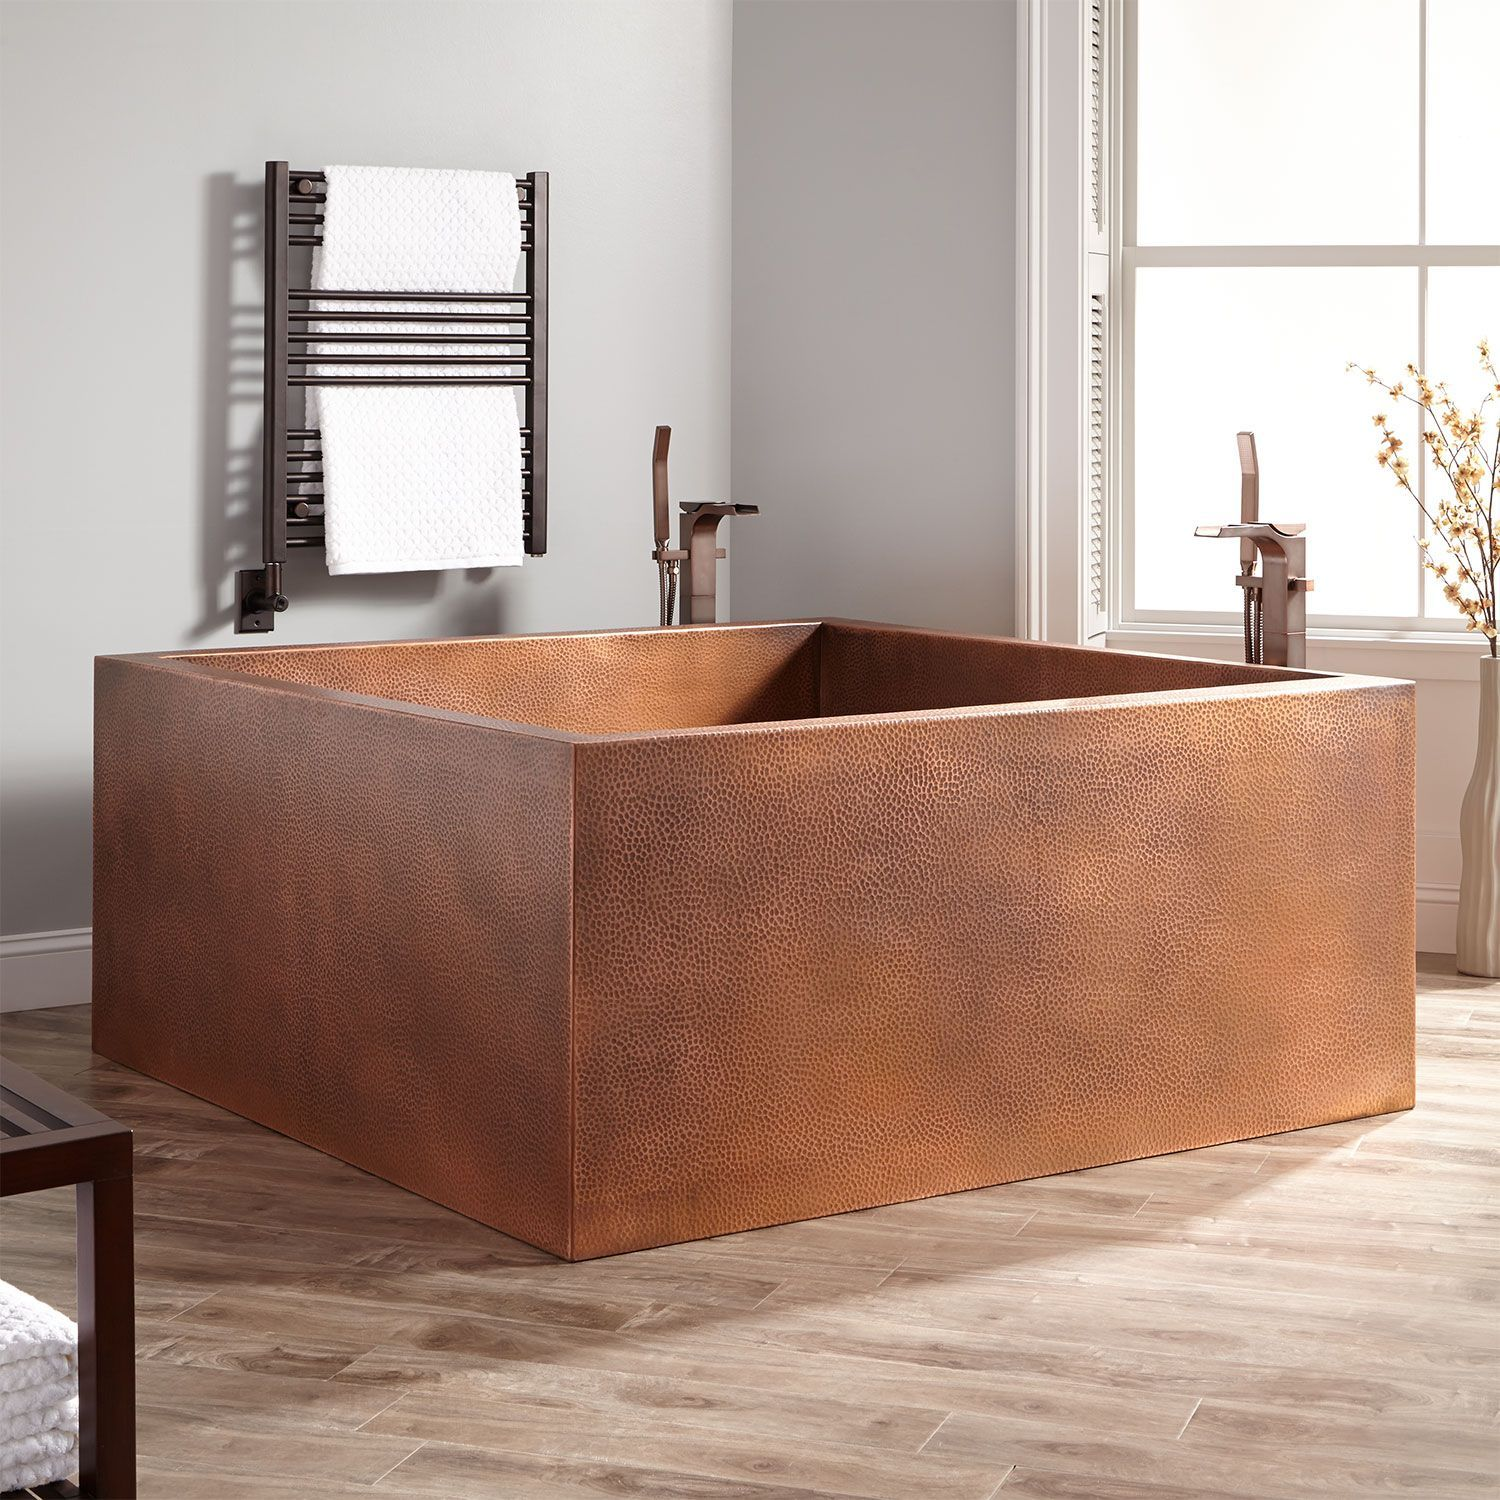 60 Elsinore Square Hammered Copper Two Person Soaking Tub No